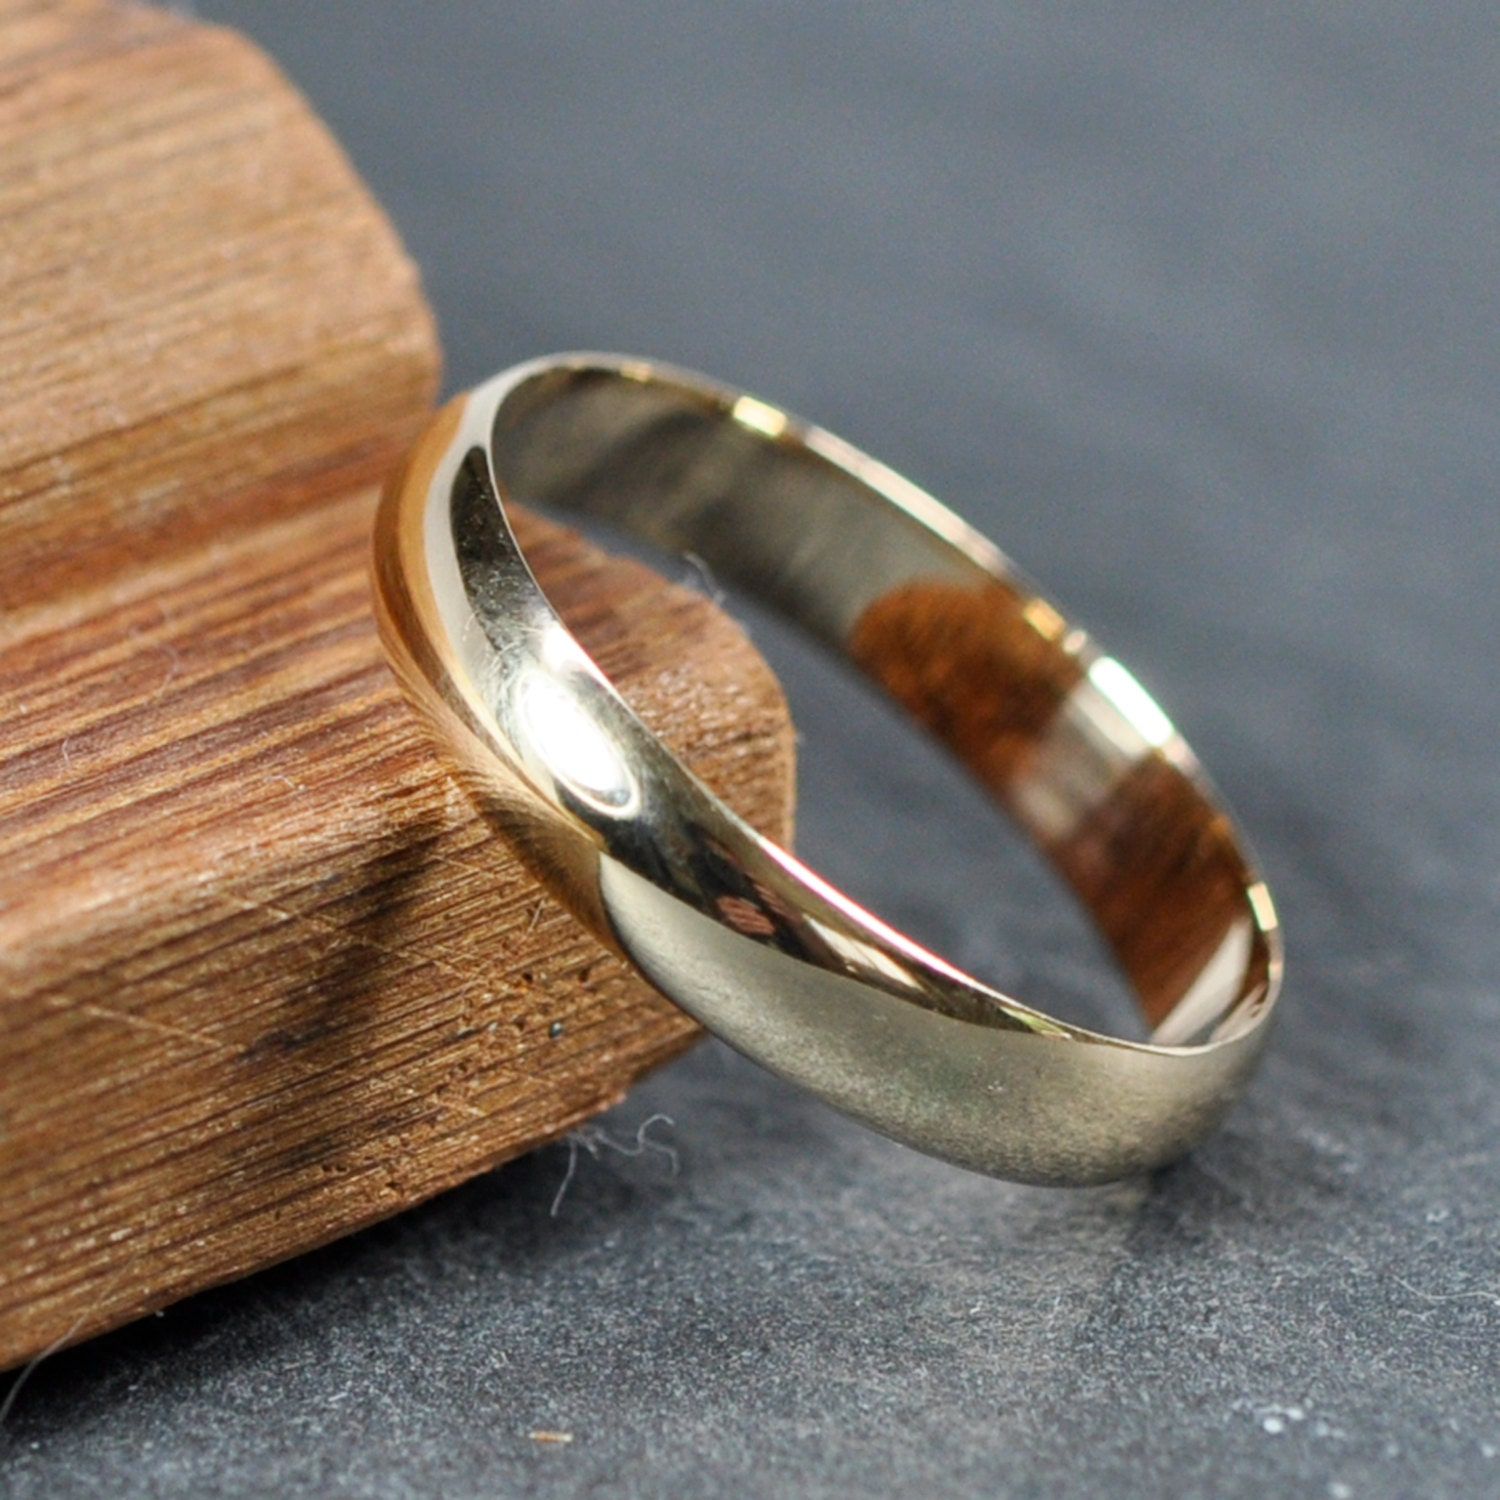 4mm wide half round low profile ring gold wedding band 14k